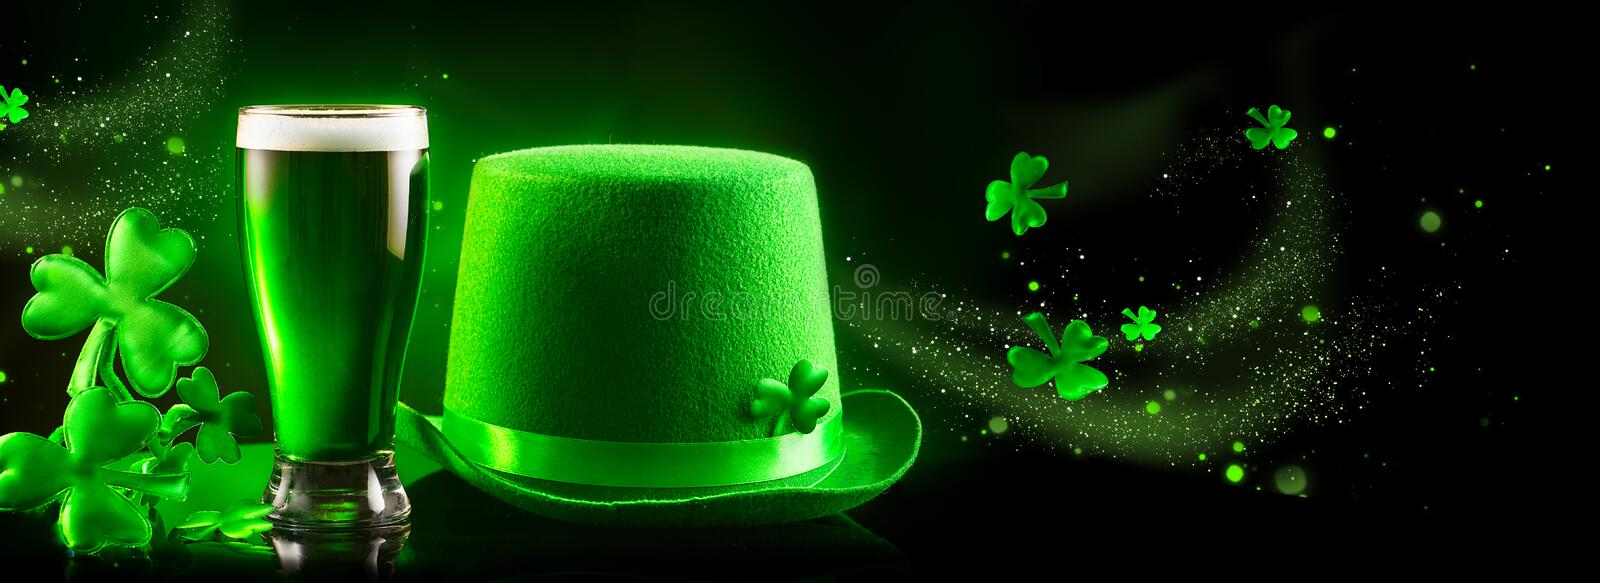 St. Patrick`s Day. Green beer pint and leprechaun hat over dark green background. Decorated with shamrock leaves. Traditional Irish festival royalty free stock photography